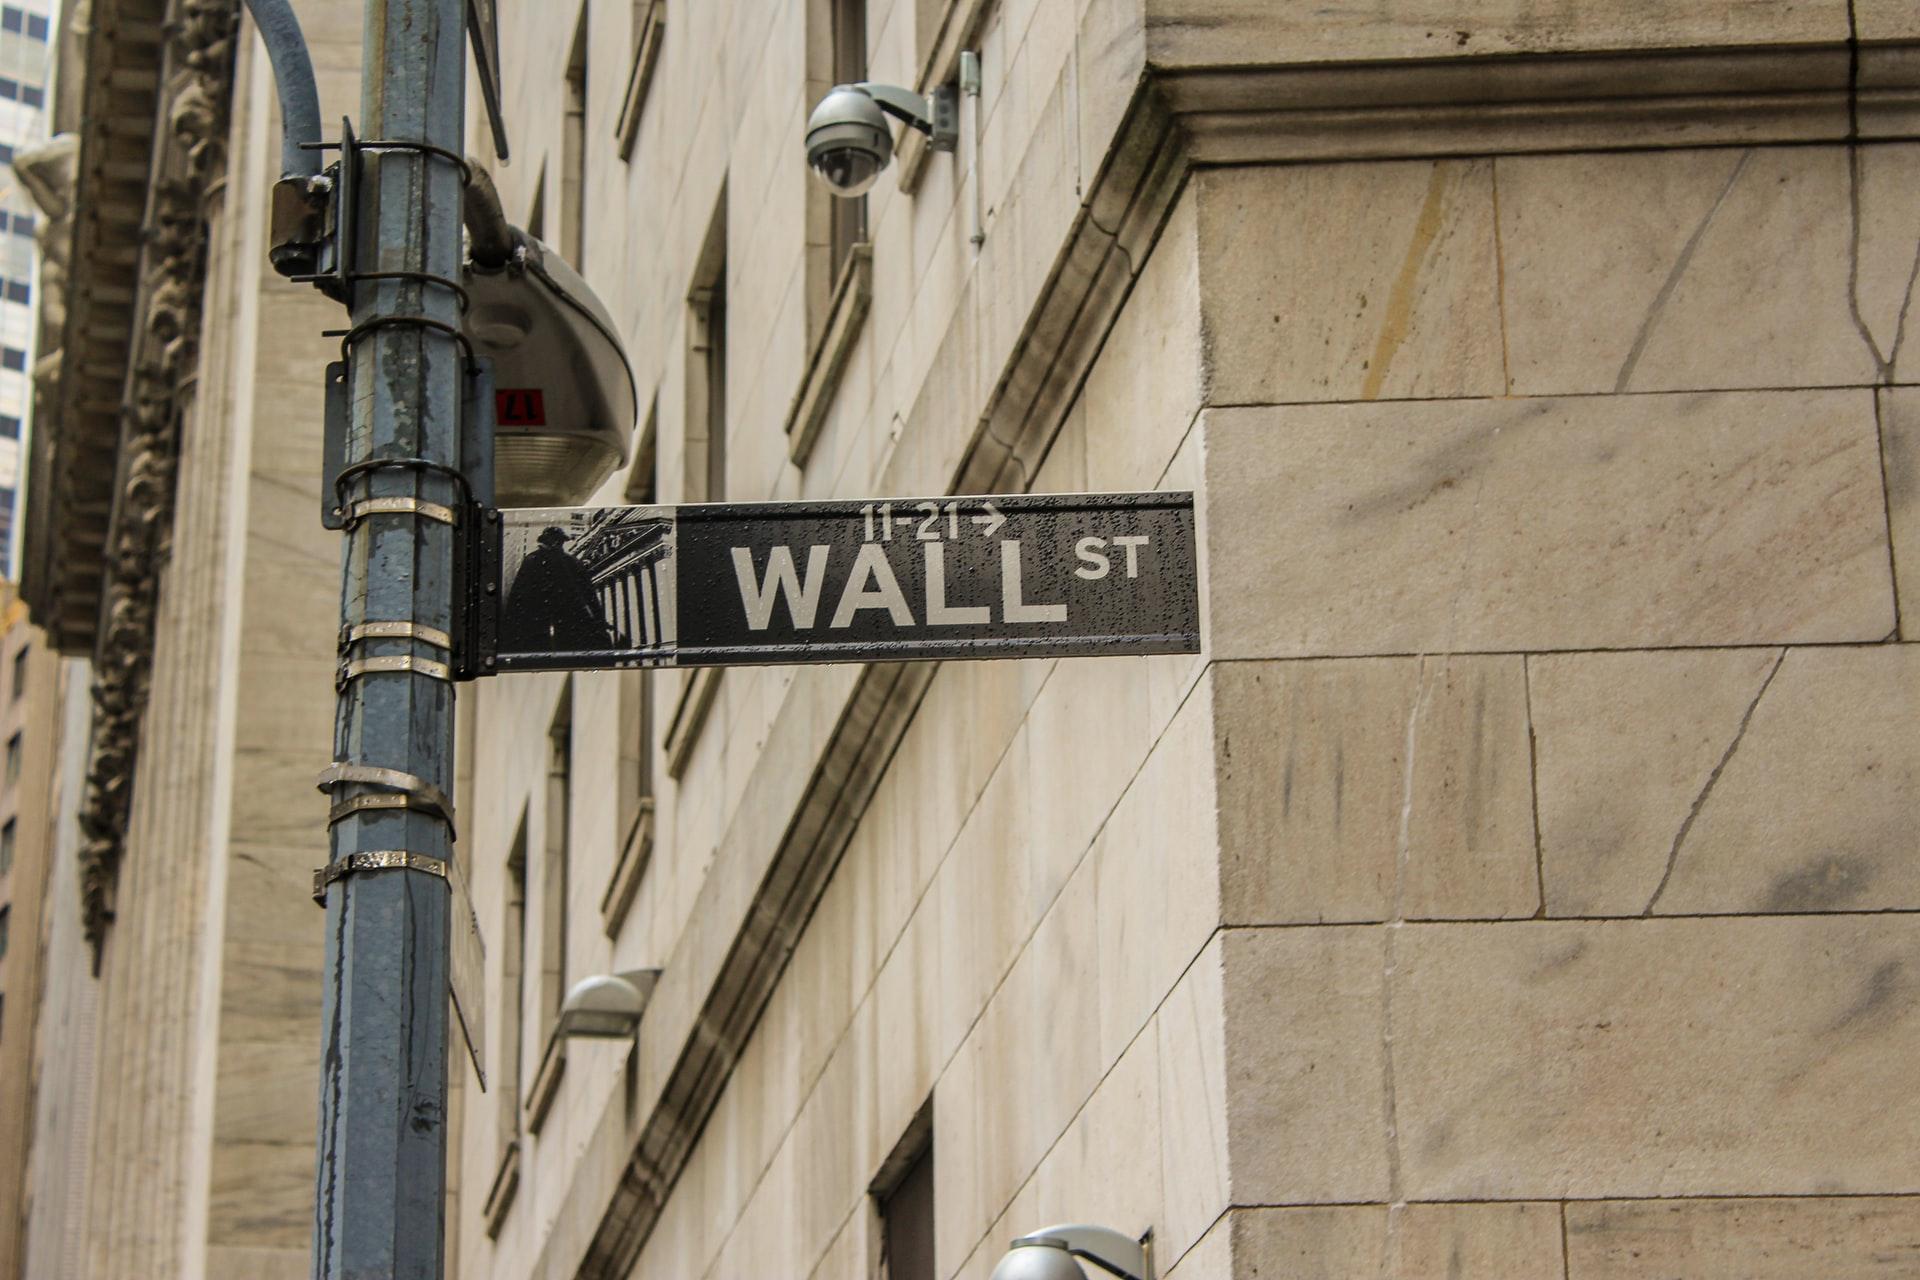 Things Most Don't Know About Occupy Wall Street